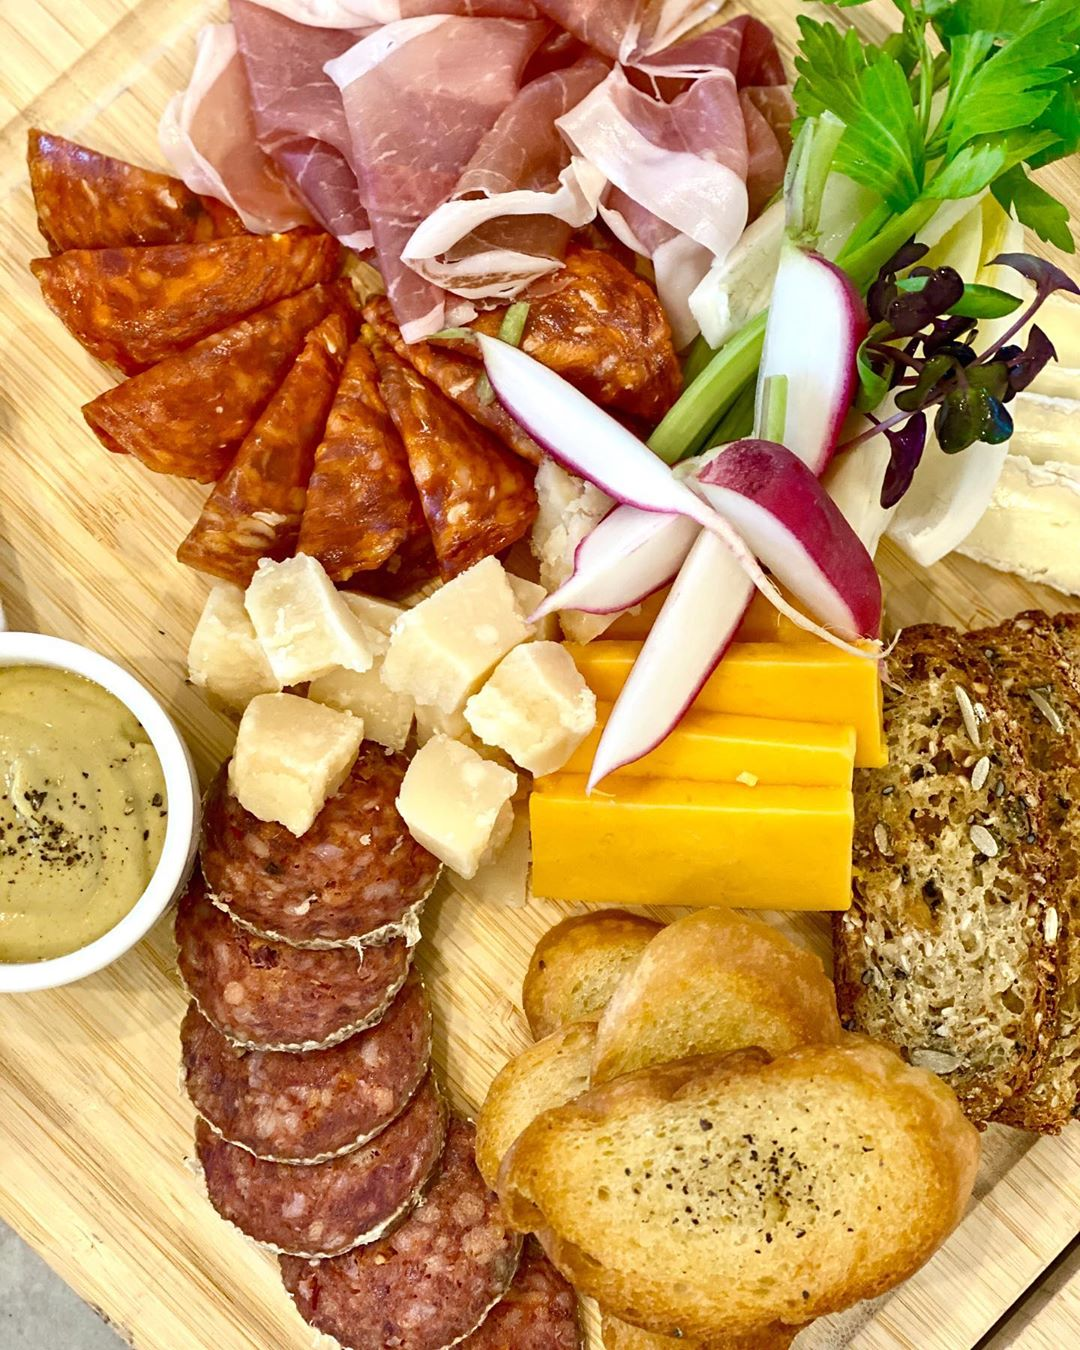 LBI Cured meats & cheeses for two (from  ) w/ Dijon, radishes, celery & toasted bagu…